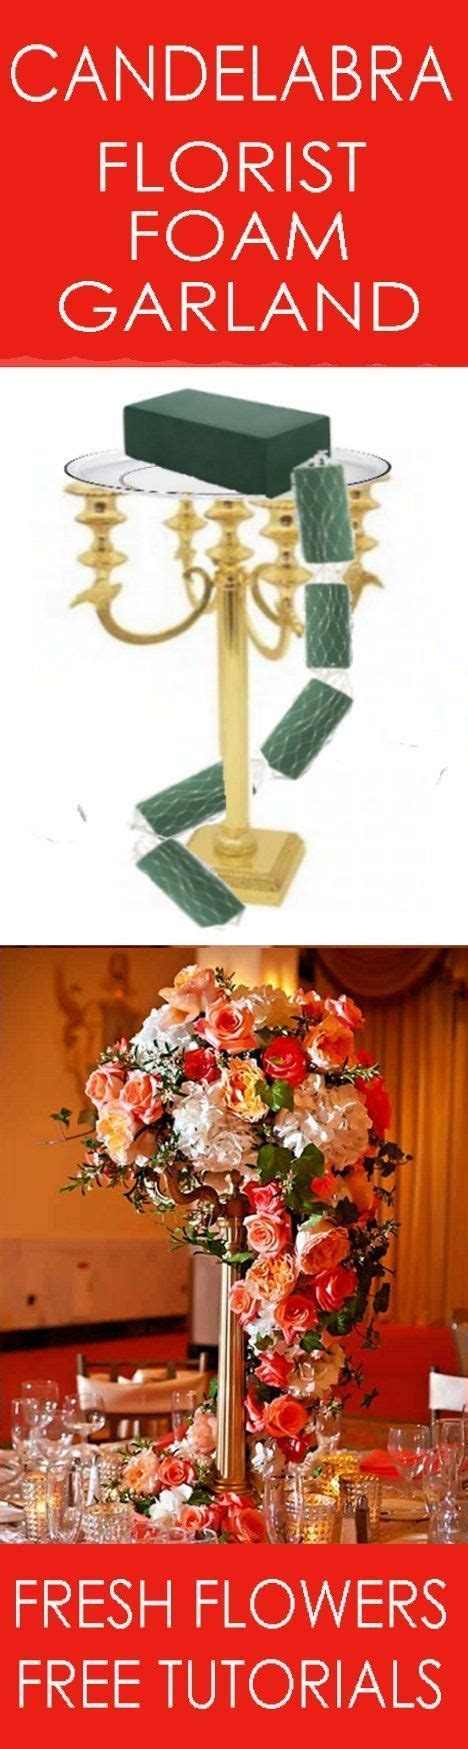 25  best ideas about Candelabra flowers on Pinterest